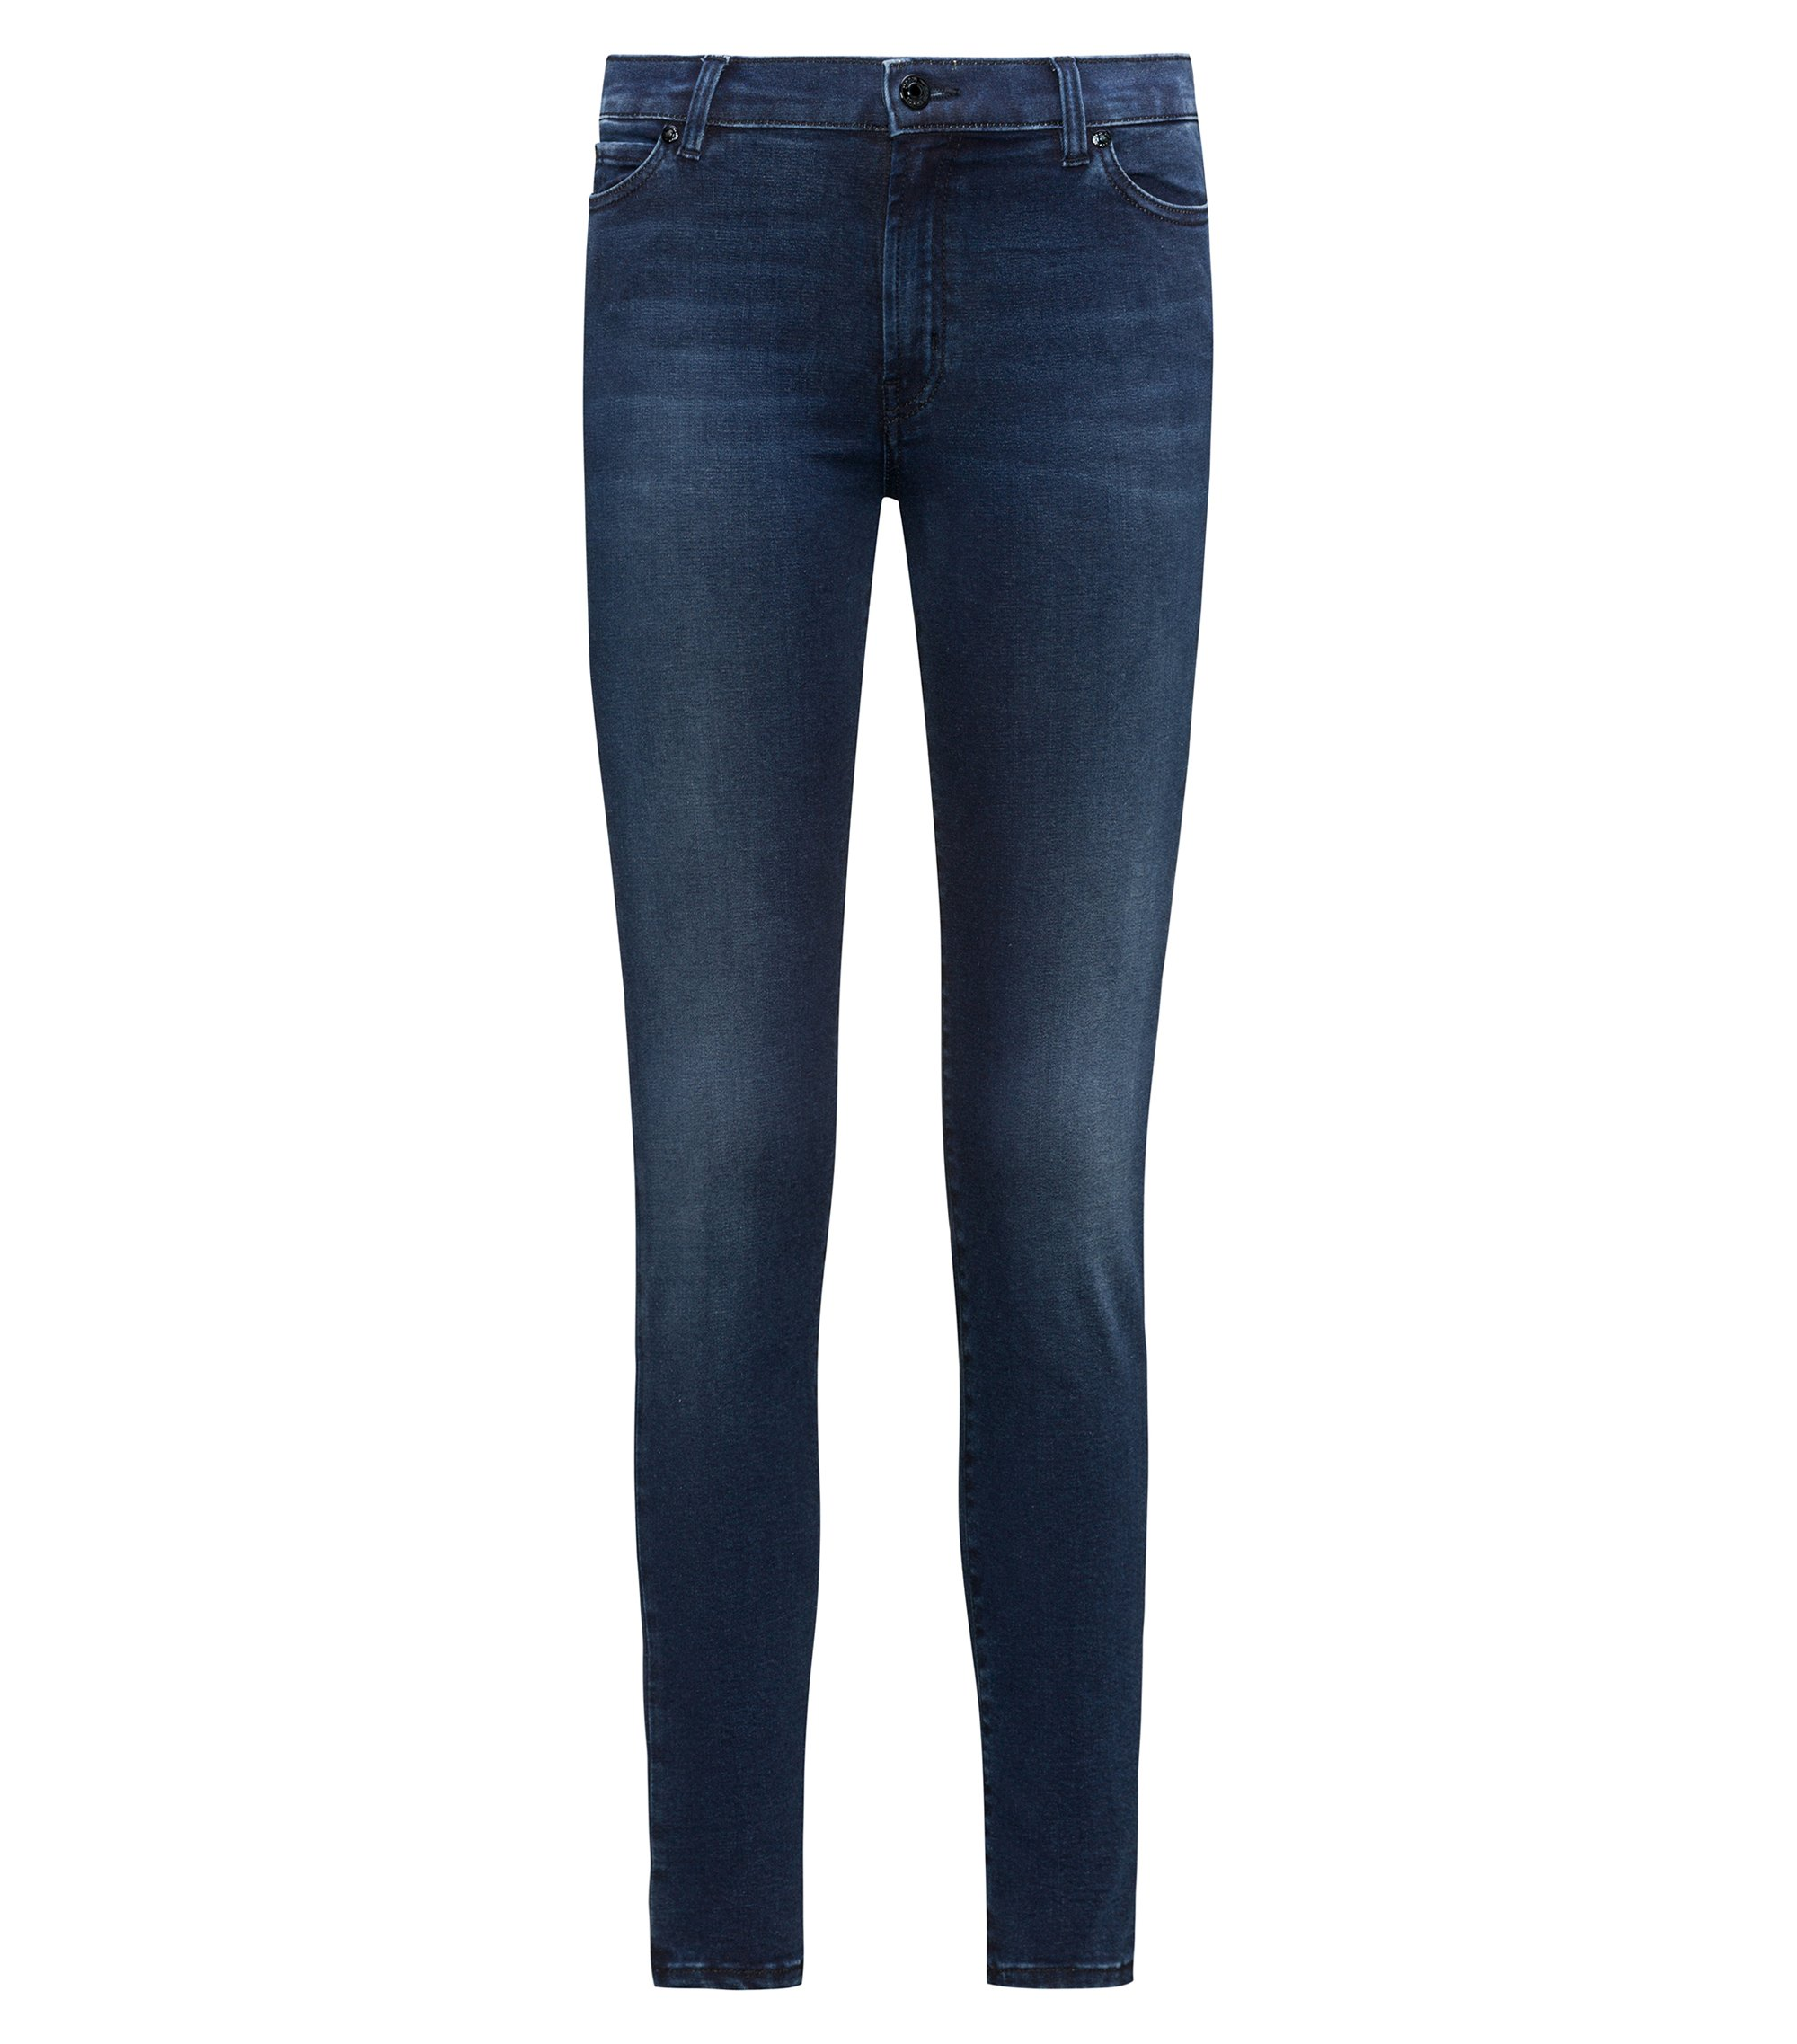 Jeans extra slim fit blu medio in denim super elasticizzato, Blu scuro